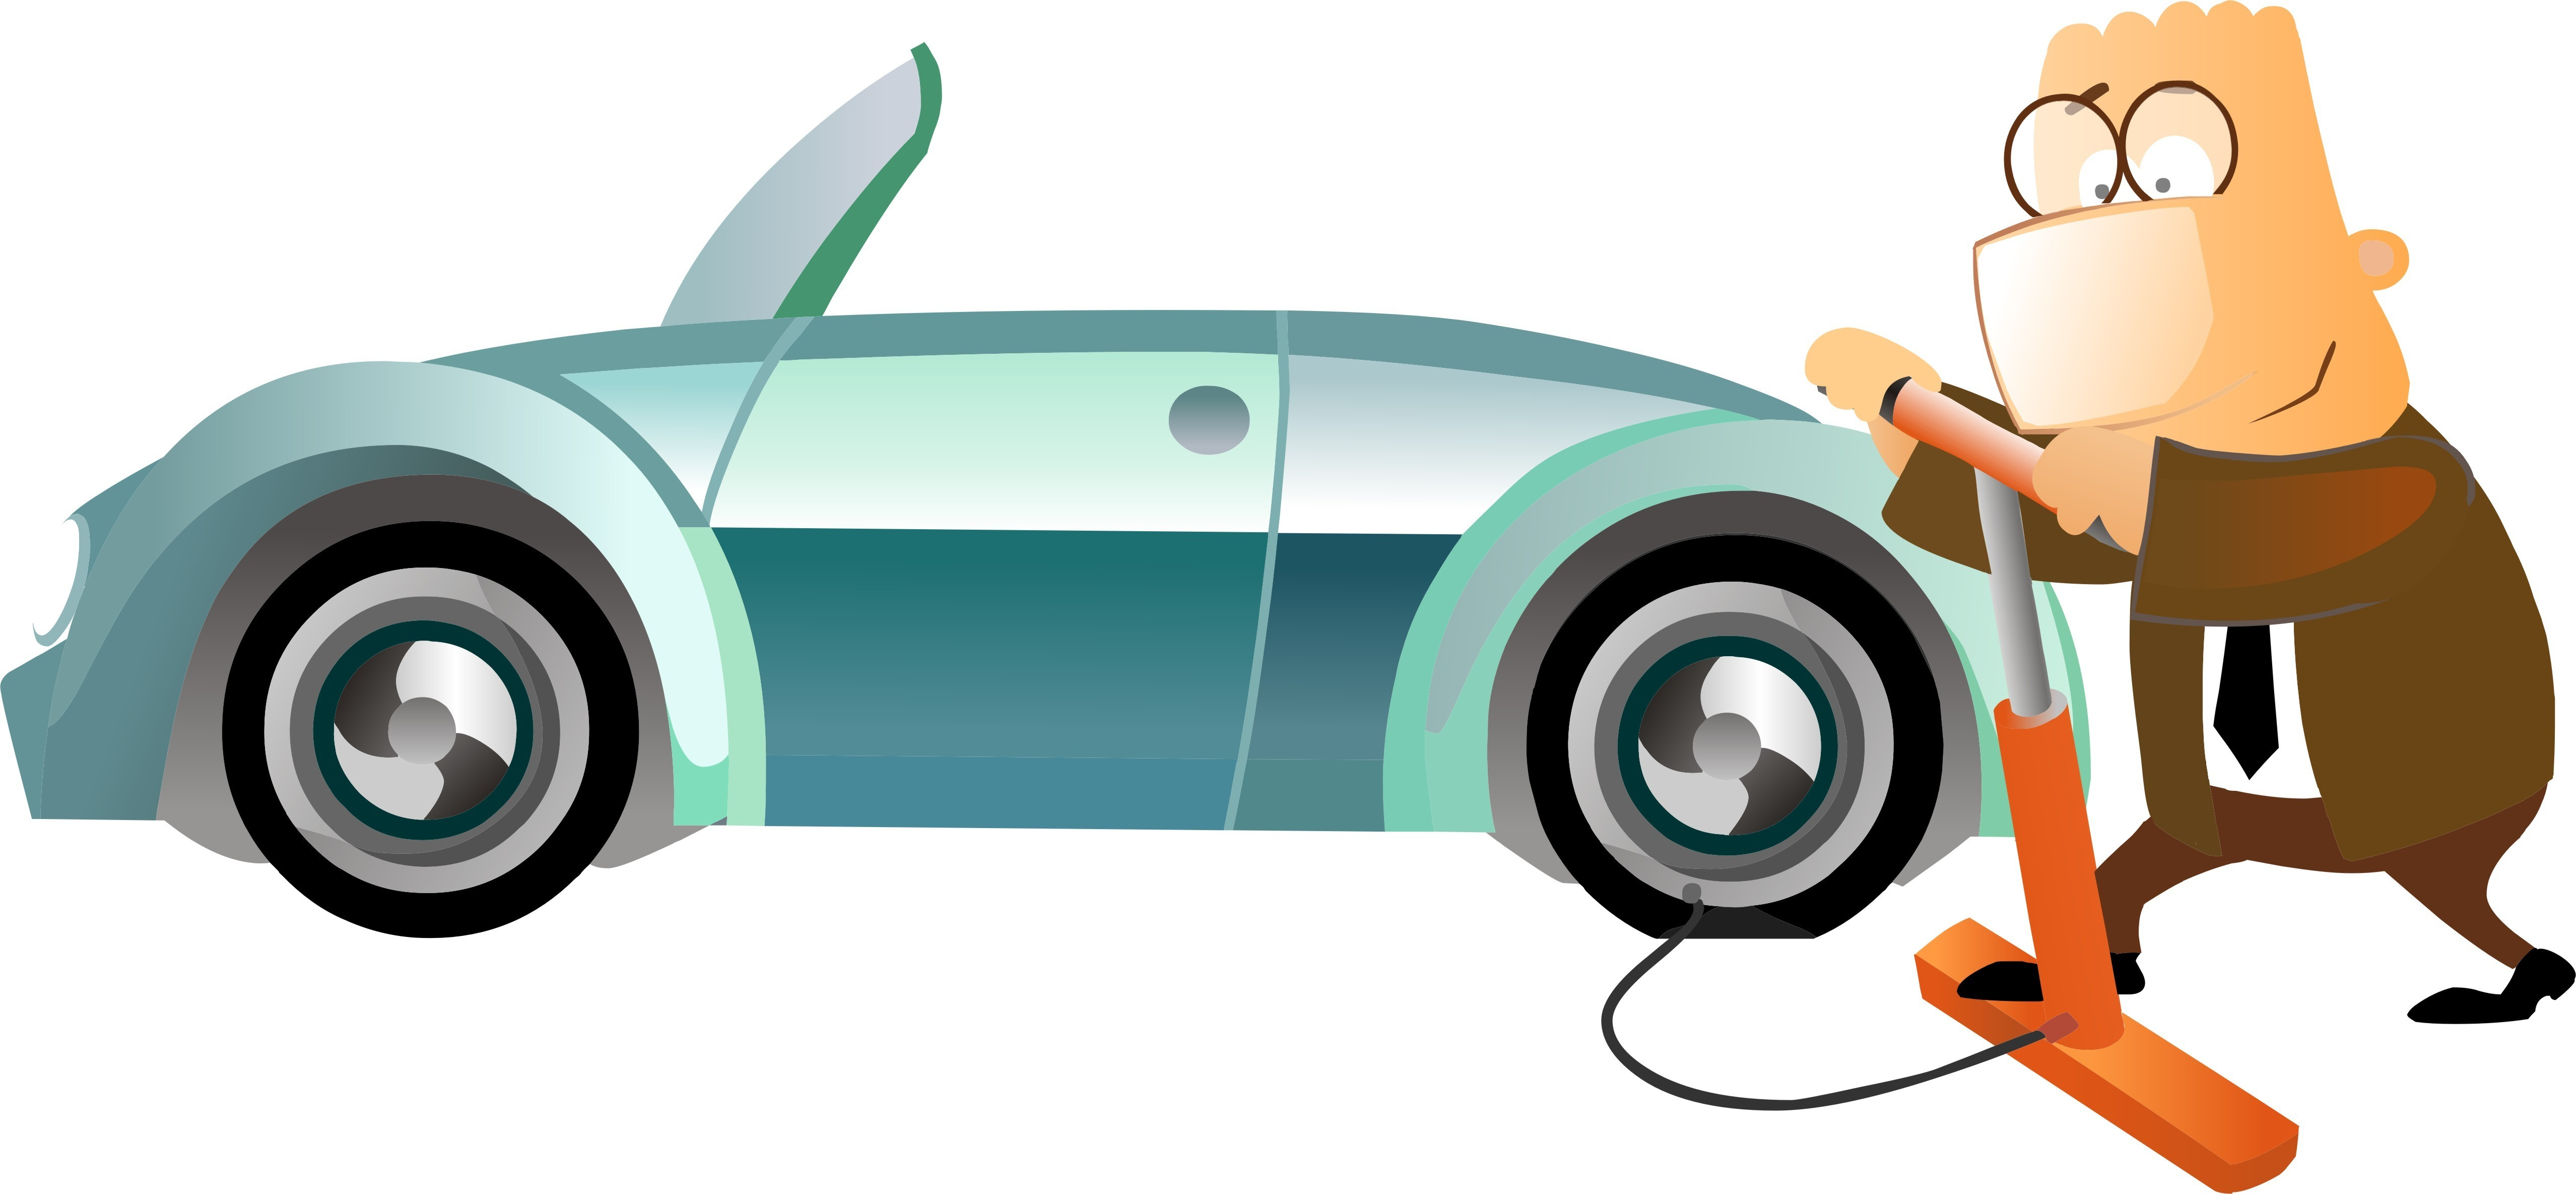 Tires clipart tire repair Tire Do Questions? You Auto